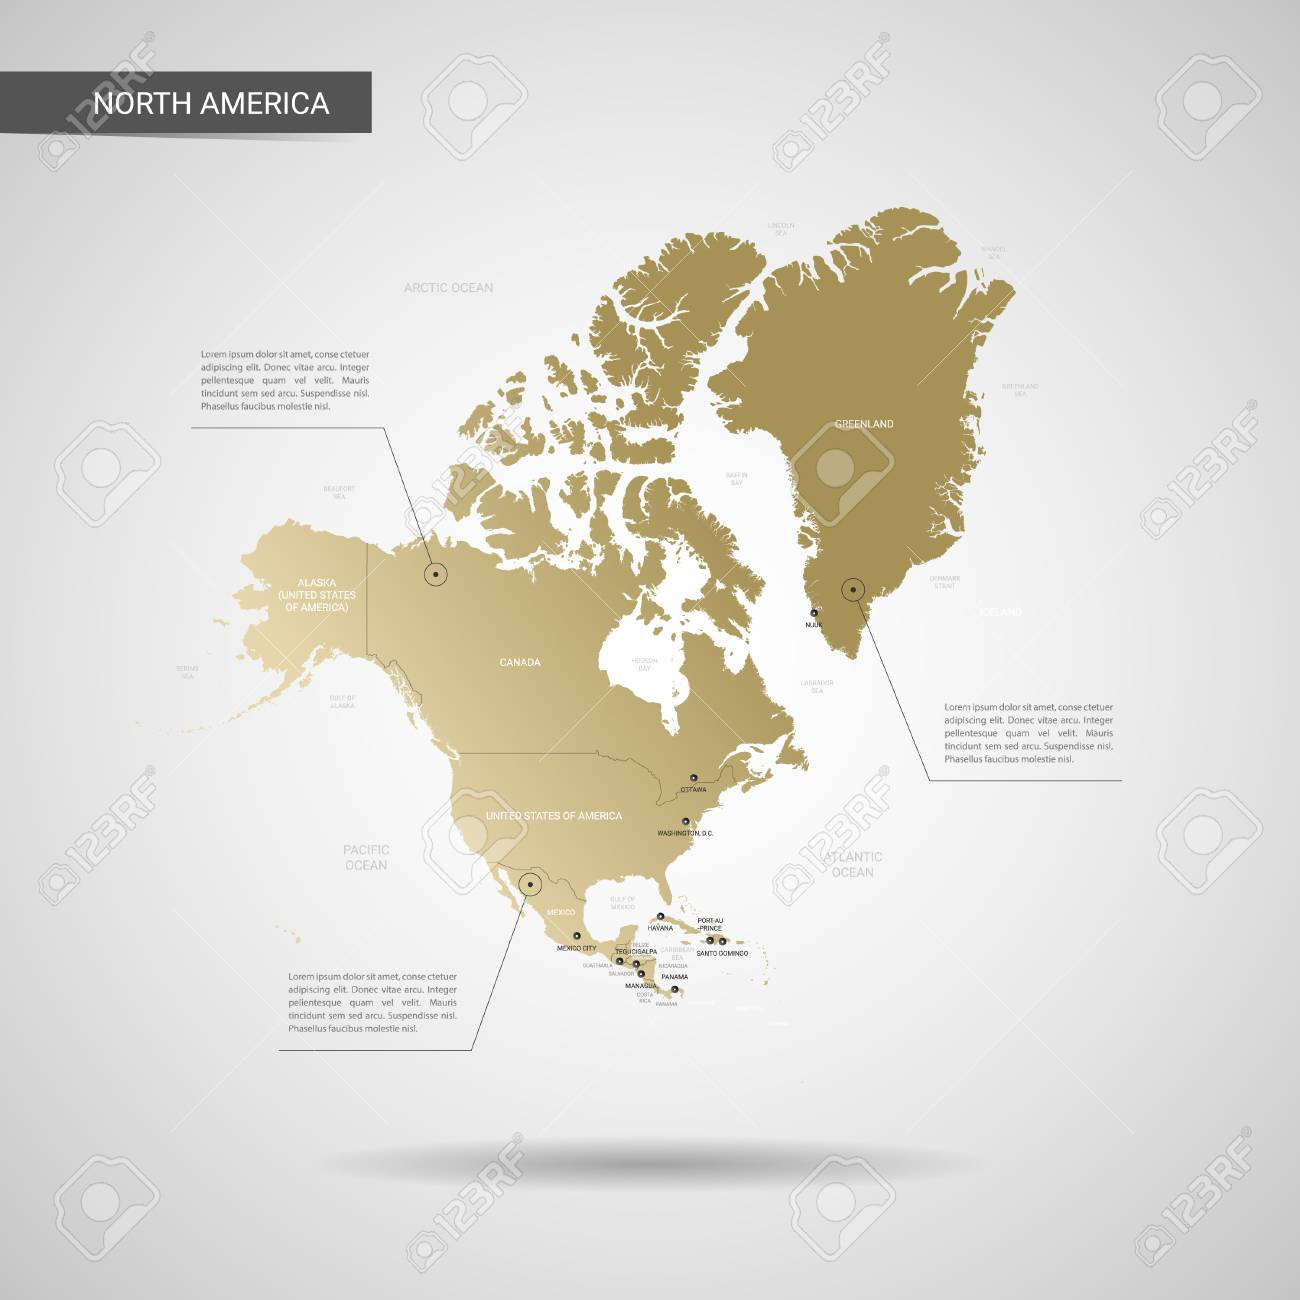 Stylized vector North America map. Infographic 3d gold map illustration..